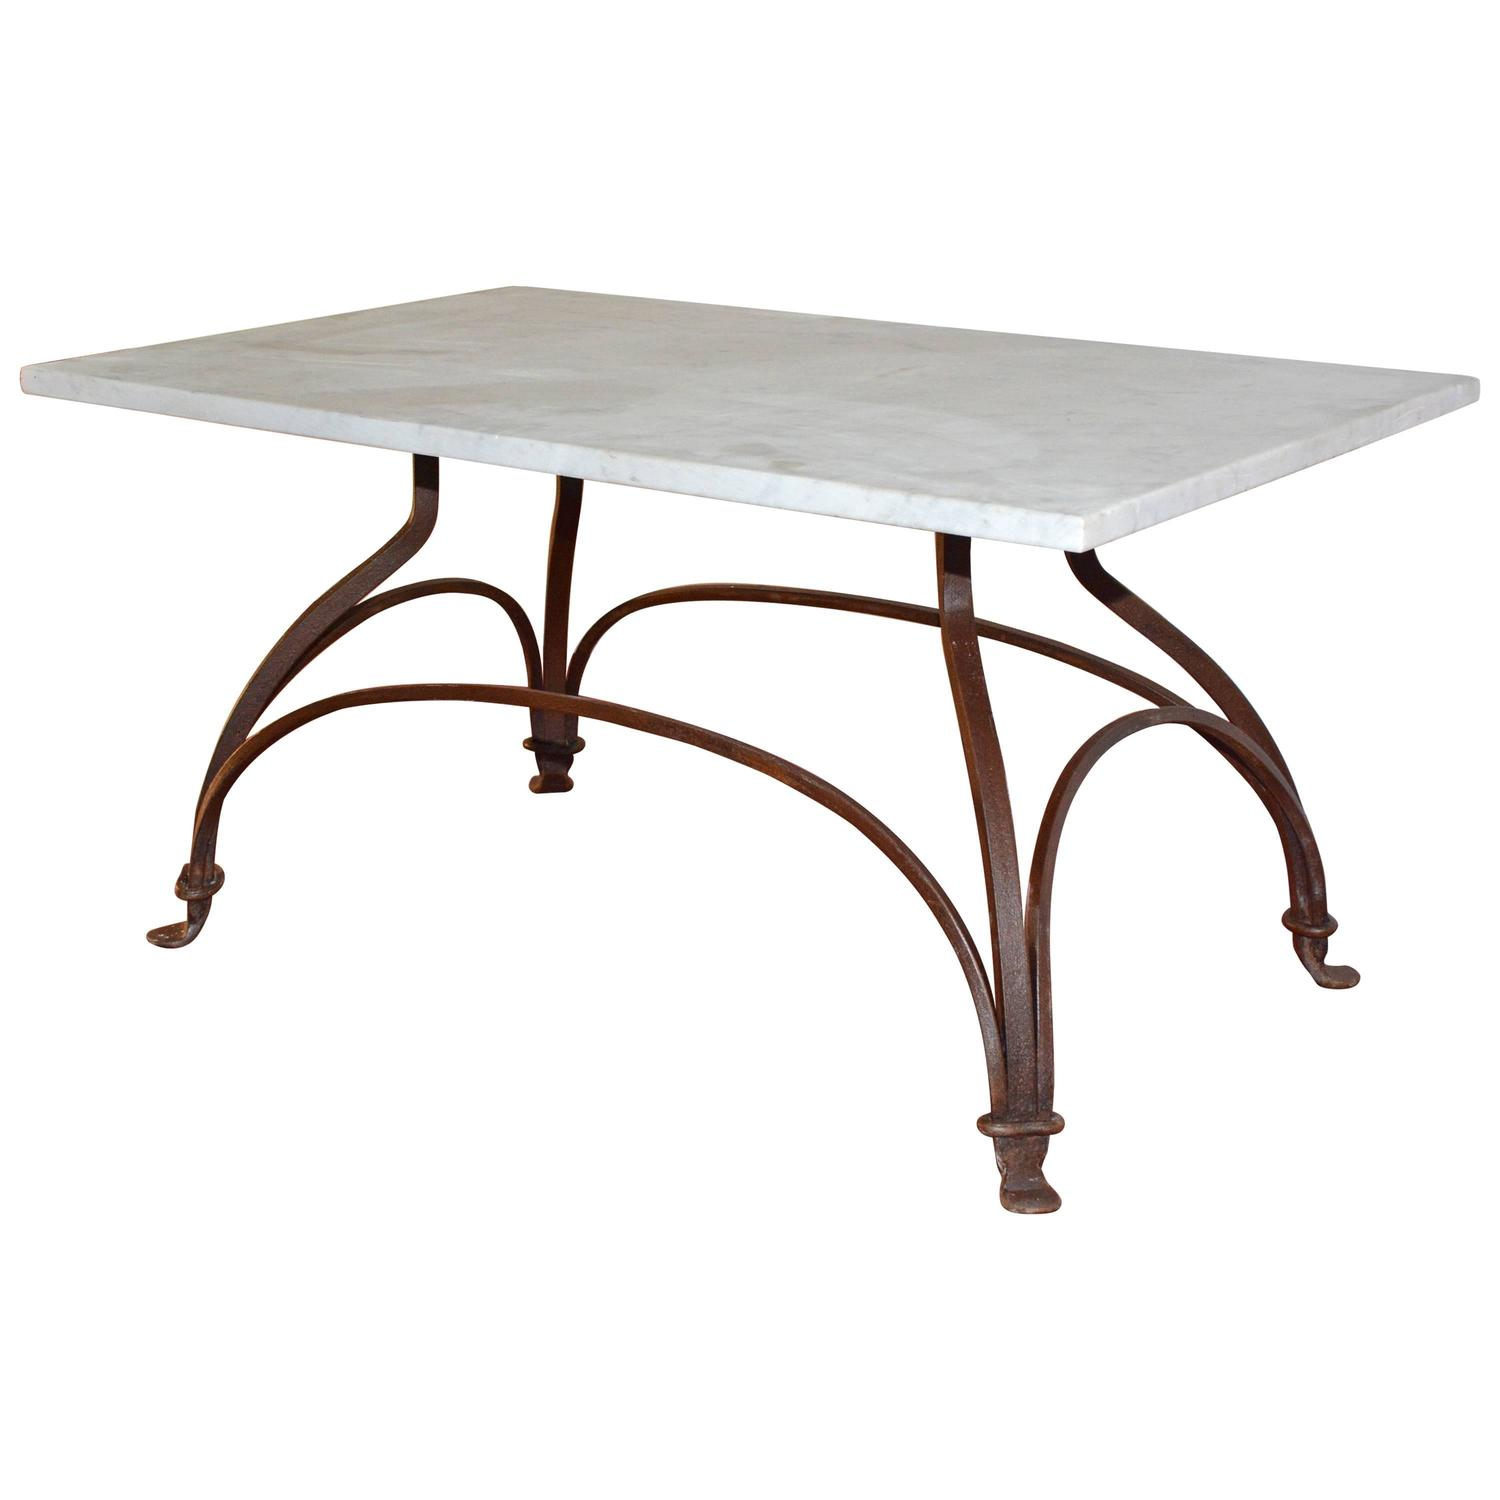 Marble And Wrought Iron Coffee Table For Sale At 1stdibs